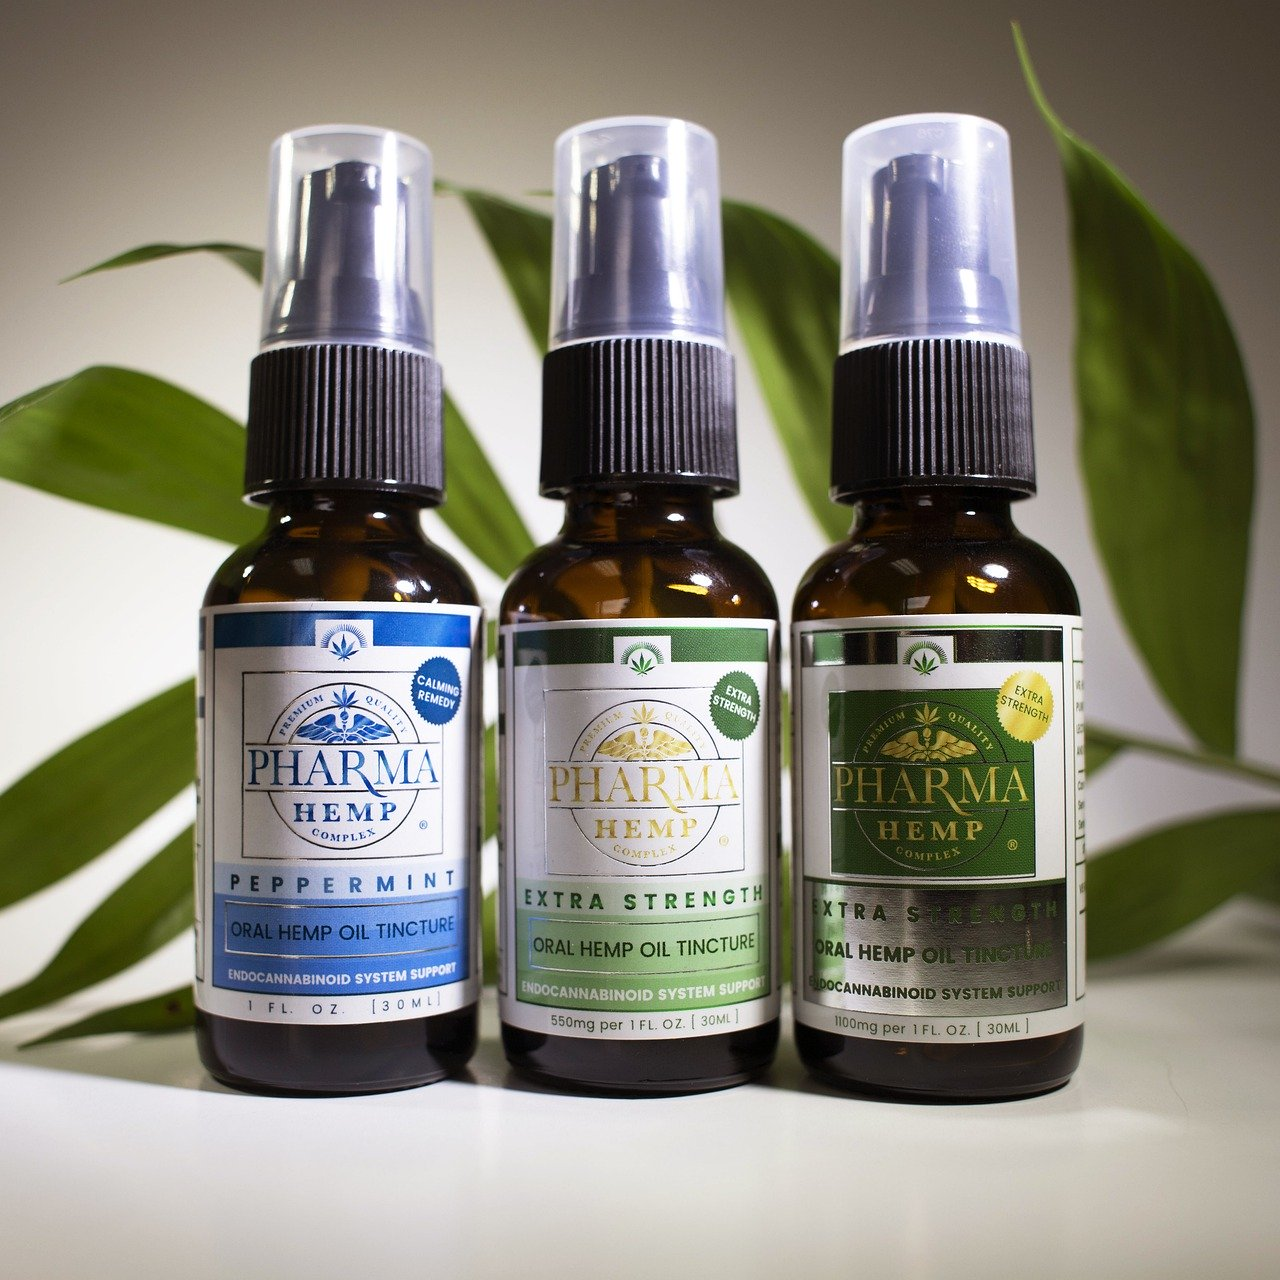 CBD Oil VS CBD Tinctures- What's the Difference?